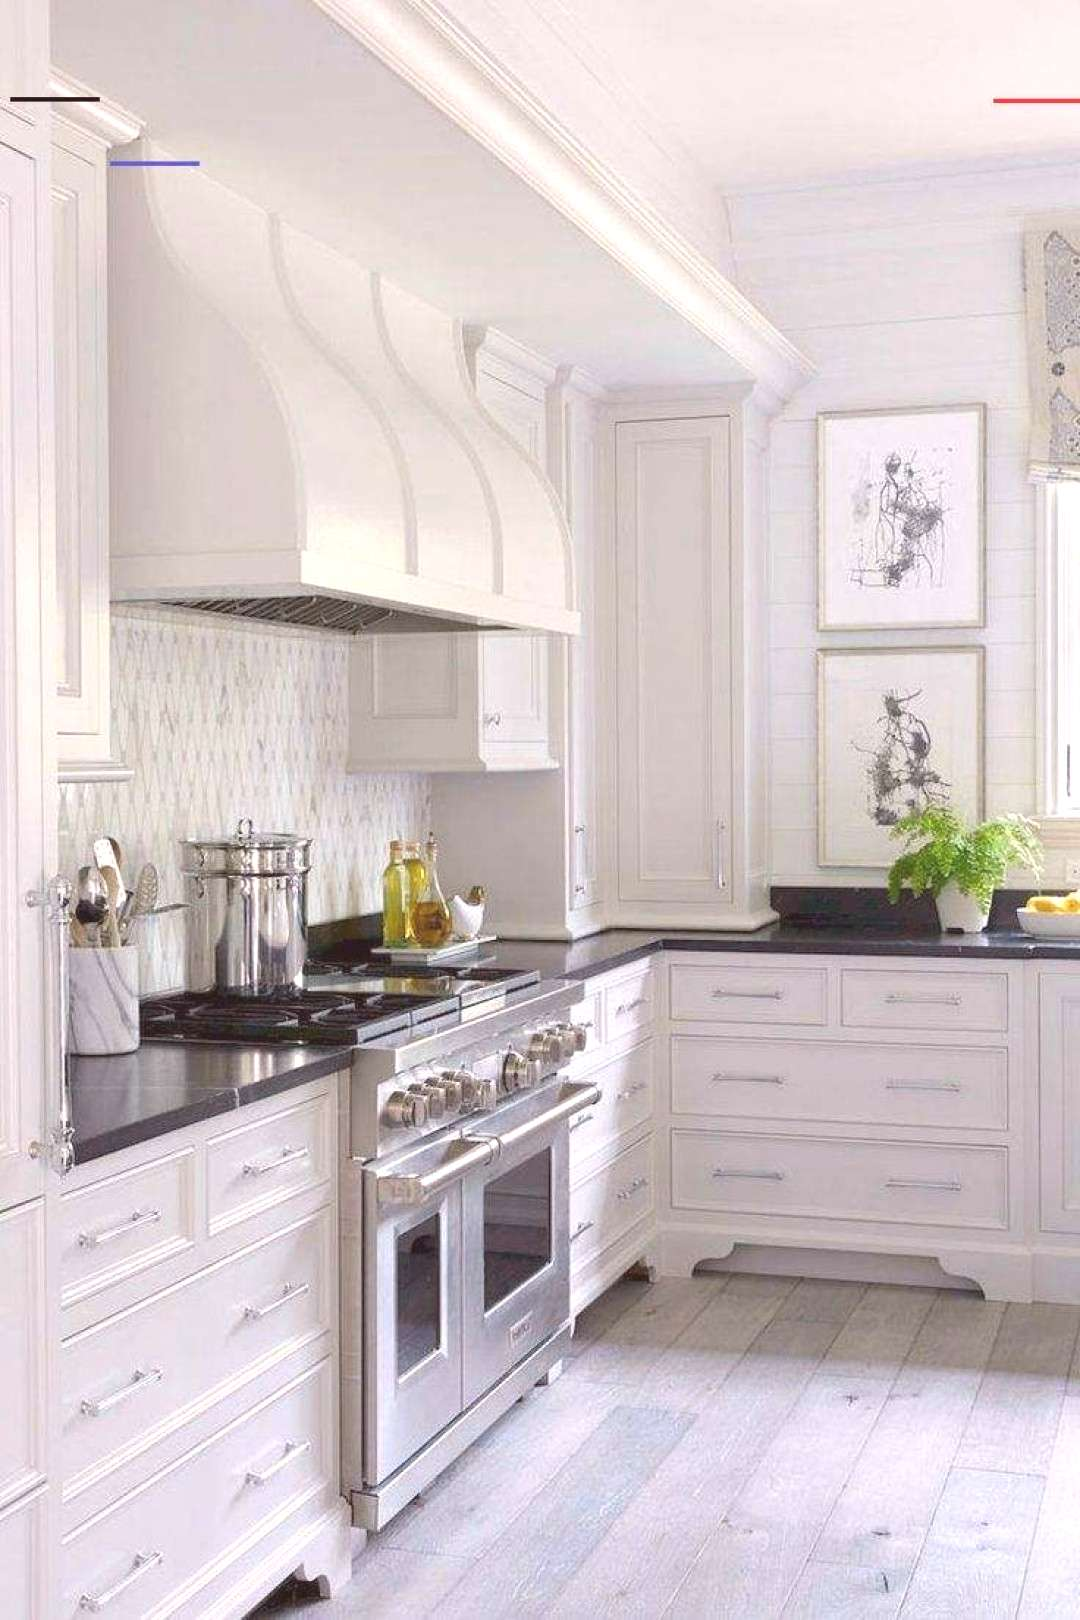 Kitchen Cabinets - CLICK THE PIC for Lots of Kitchen Ideas.